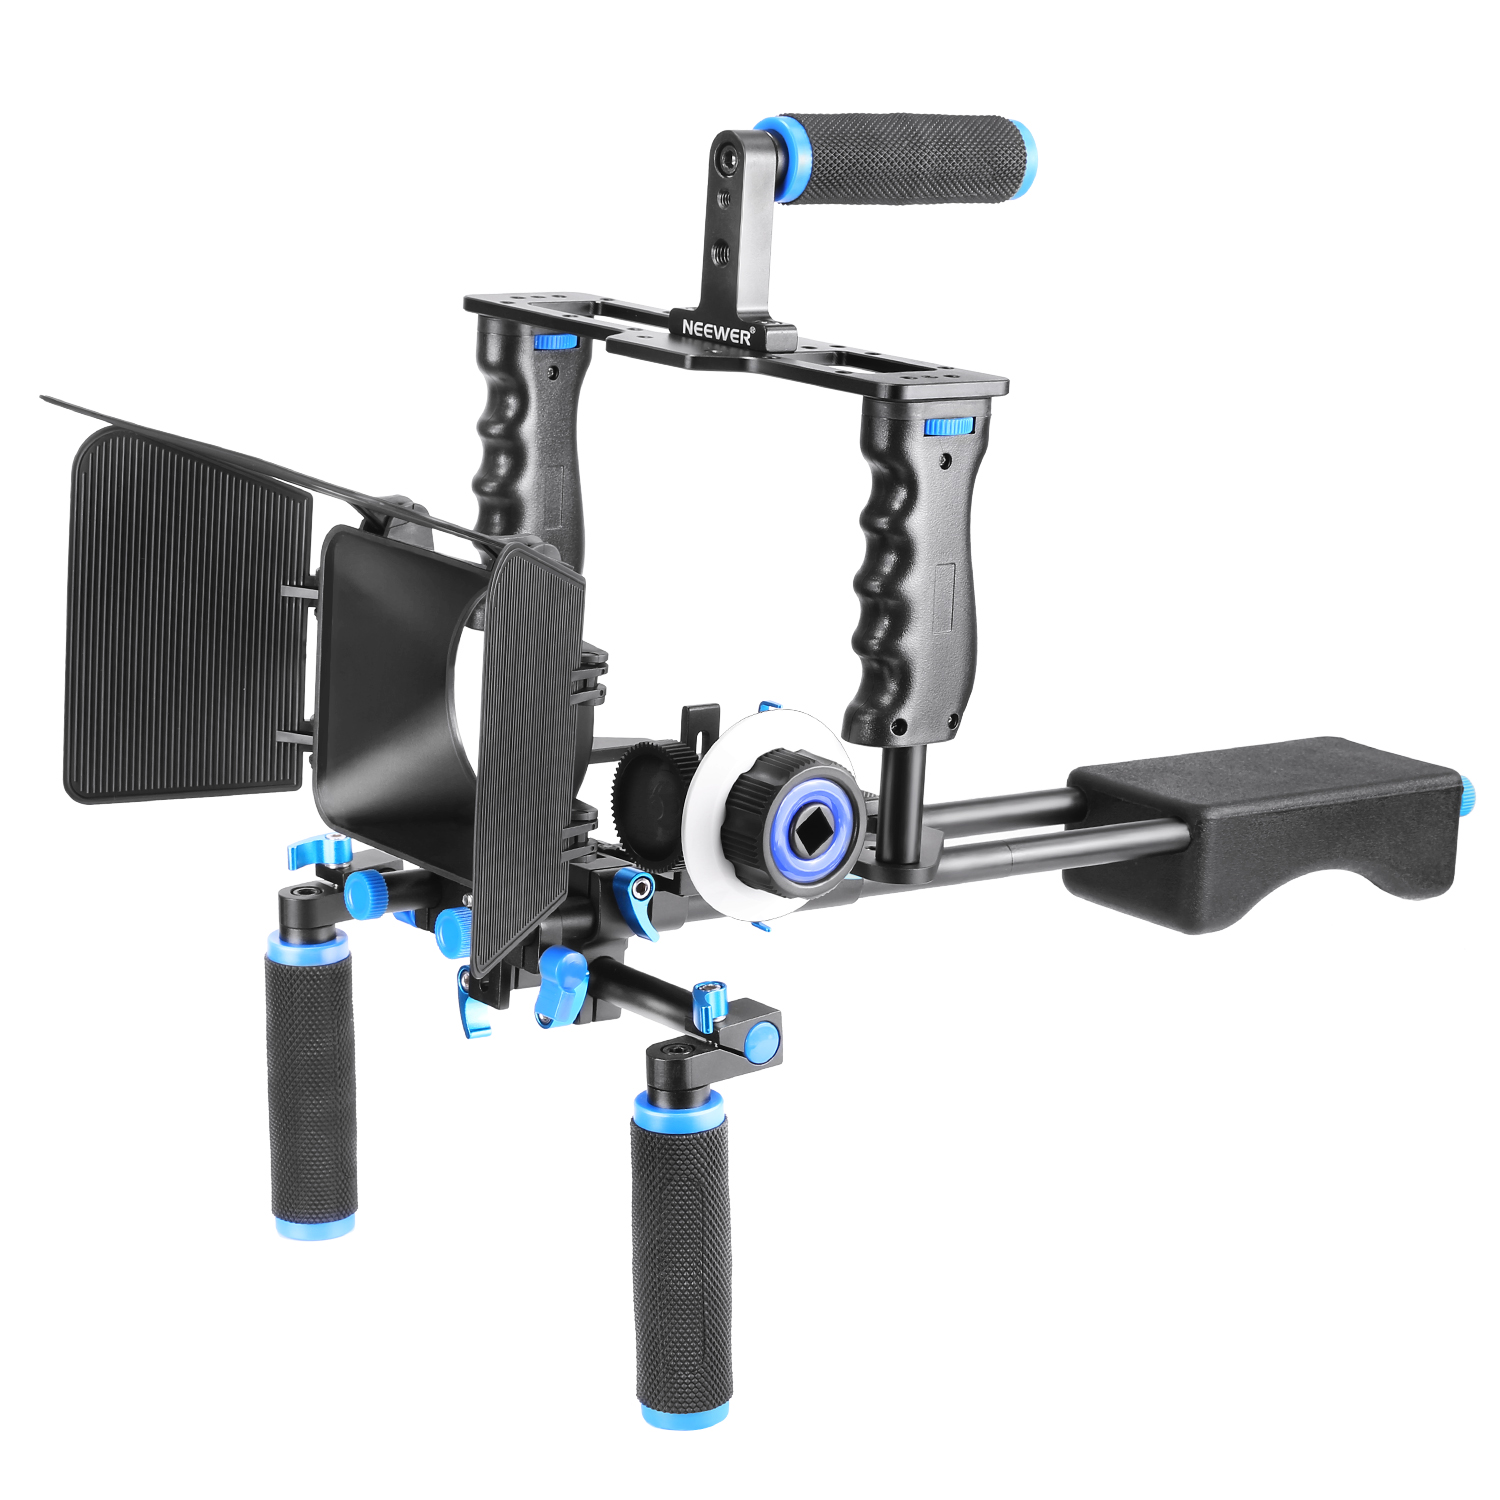 Neewer® Aluminum Film Movie Kit System Rig for Canon/Nikon/Pentax/Sony and other DSLR Cameras,includes:(1)Video Cage+(1)Top Handle Grip+(2)15mm Rod+(1)Matte Box+(1)Follow Focus+(1)Shoulder Rig Image